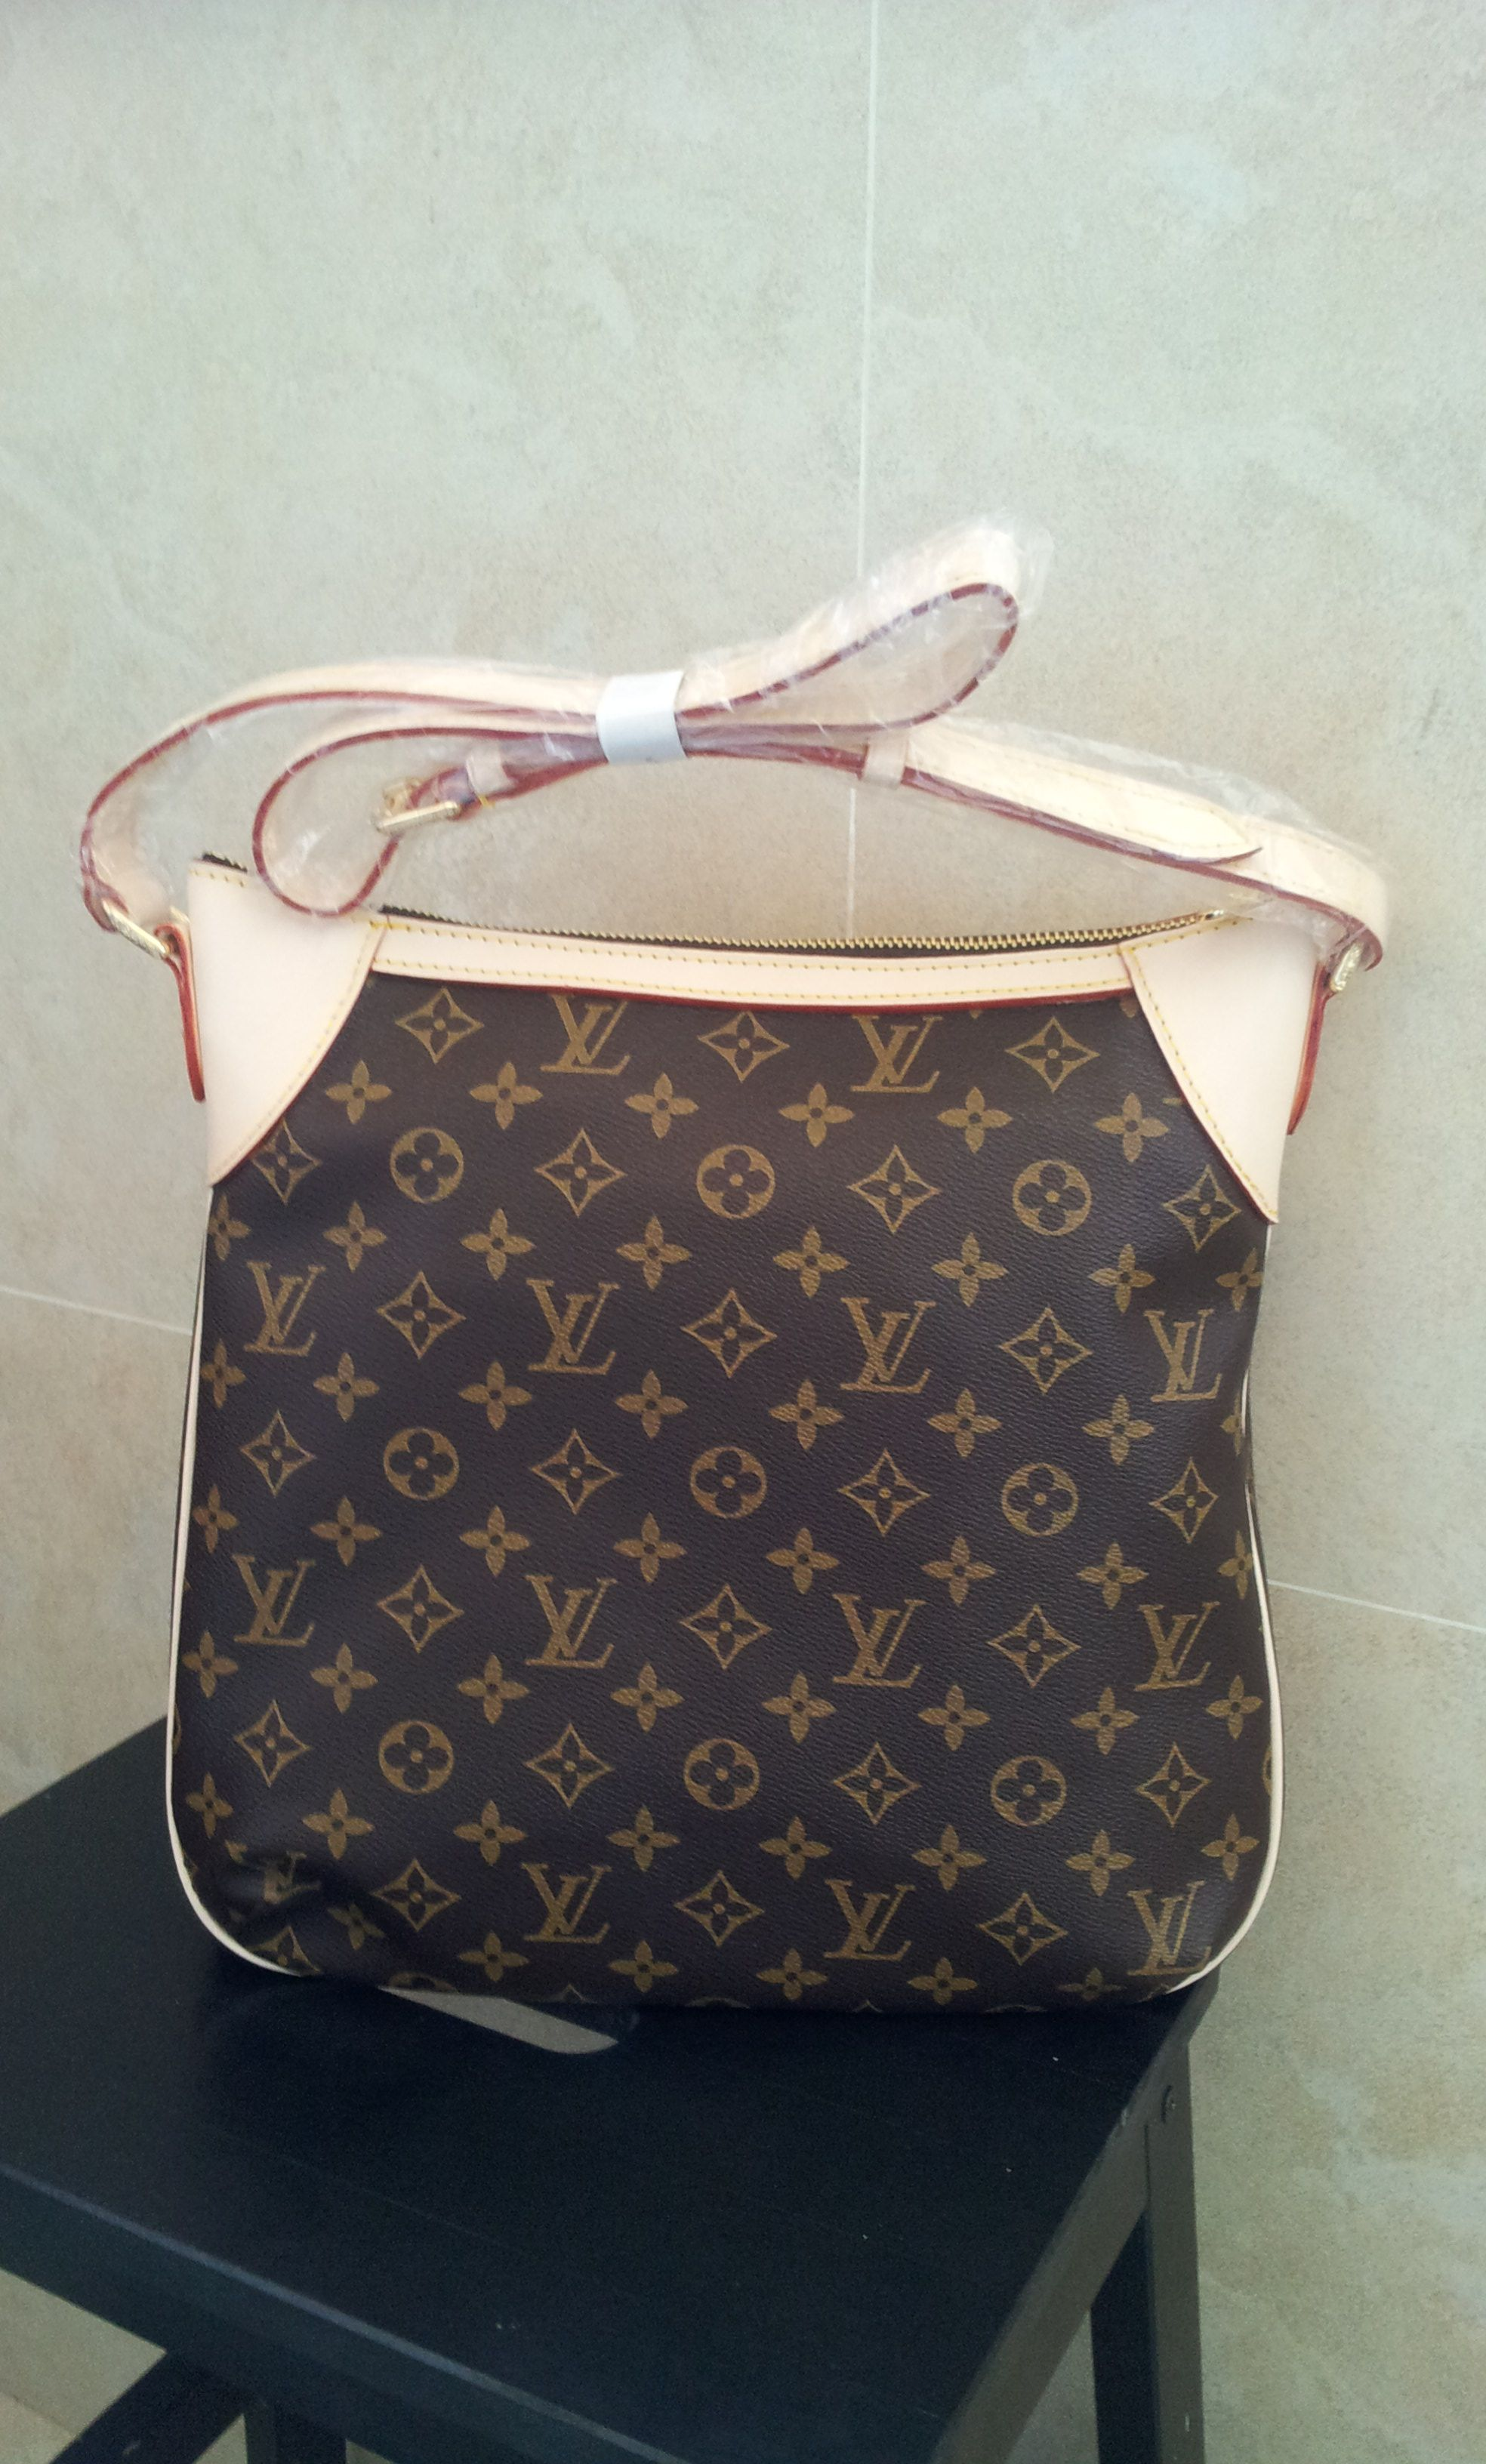 973980cb755 Louis Vuitton ODEON PM M56390.$189+FREE shipping+on-line payment ...